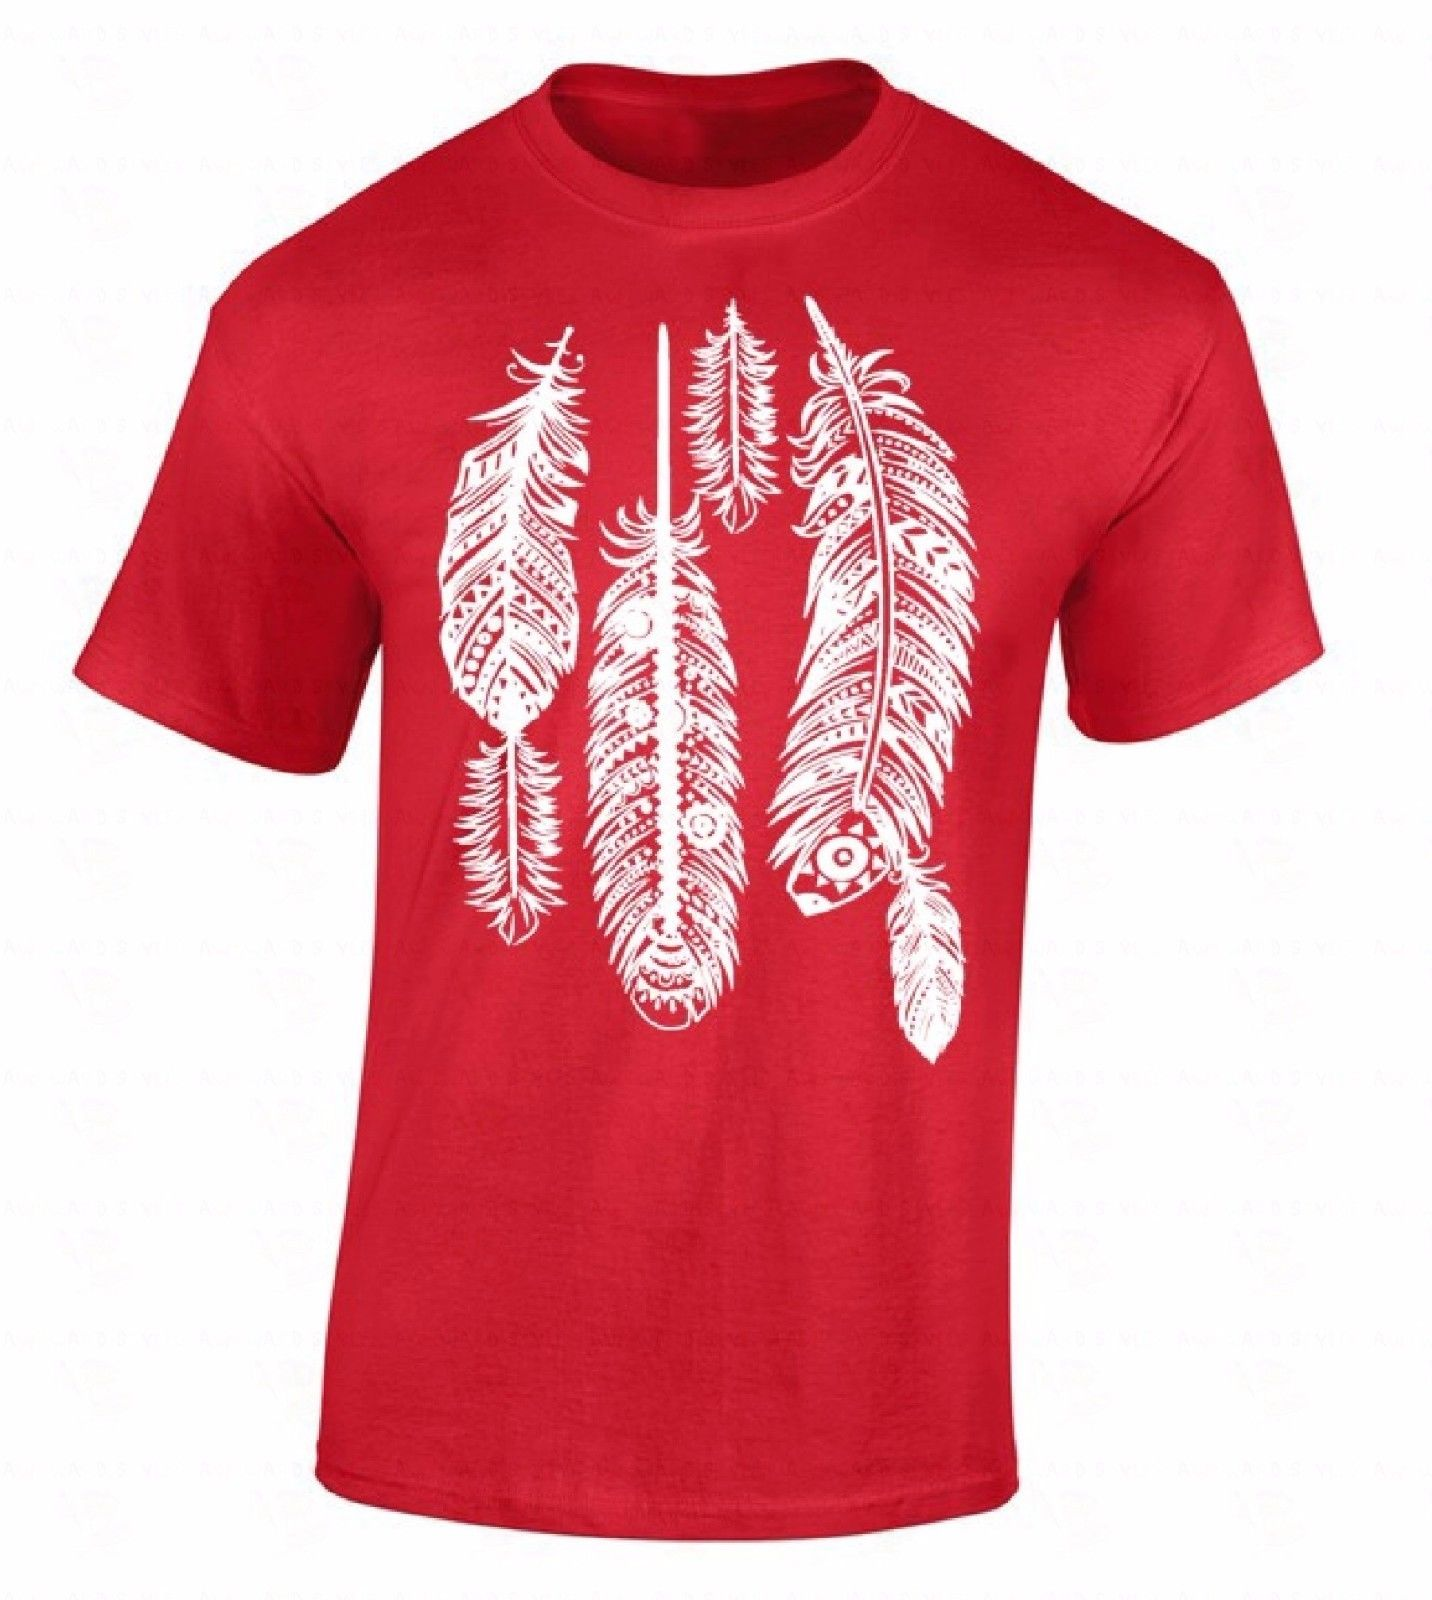 Feathers T-SHIRT Native American Spirit Indian Tribal Southwest Ethnic Shirt Fashion Print T shirt Plus Size